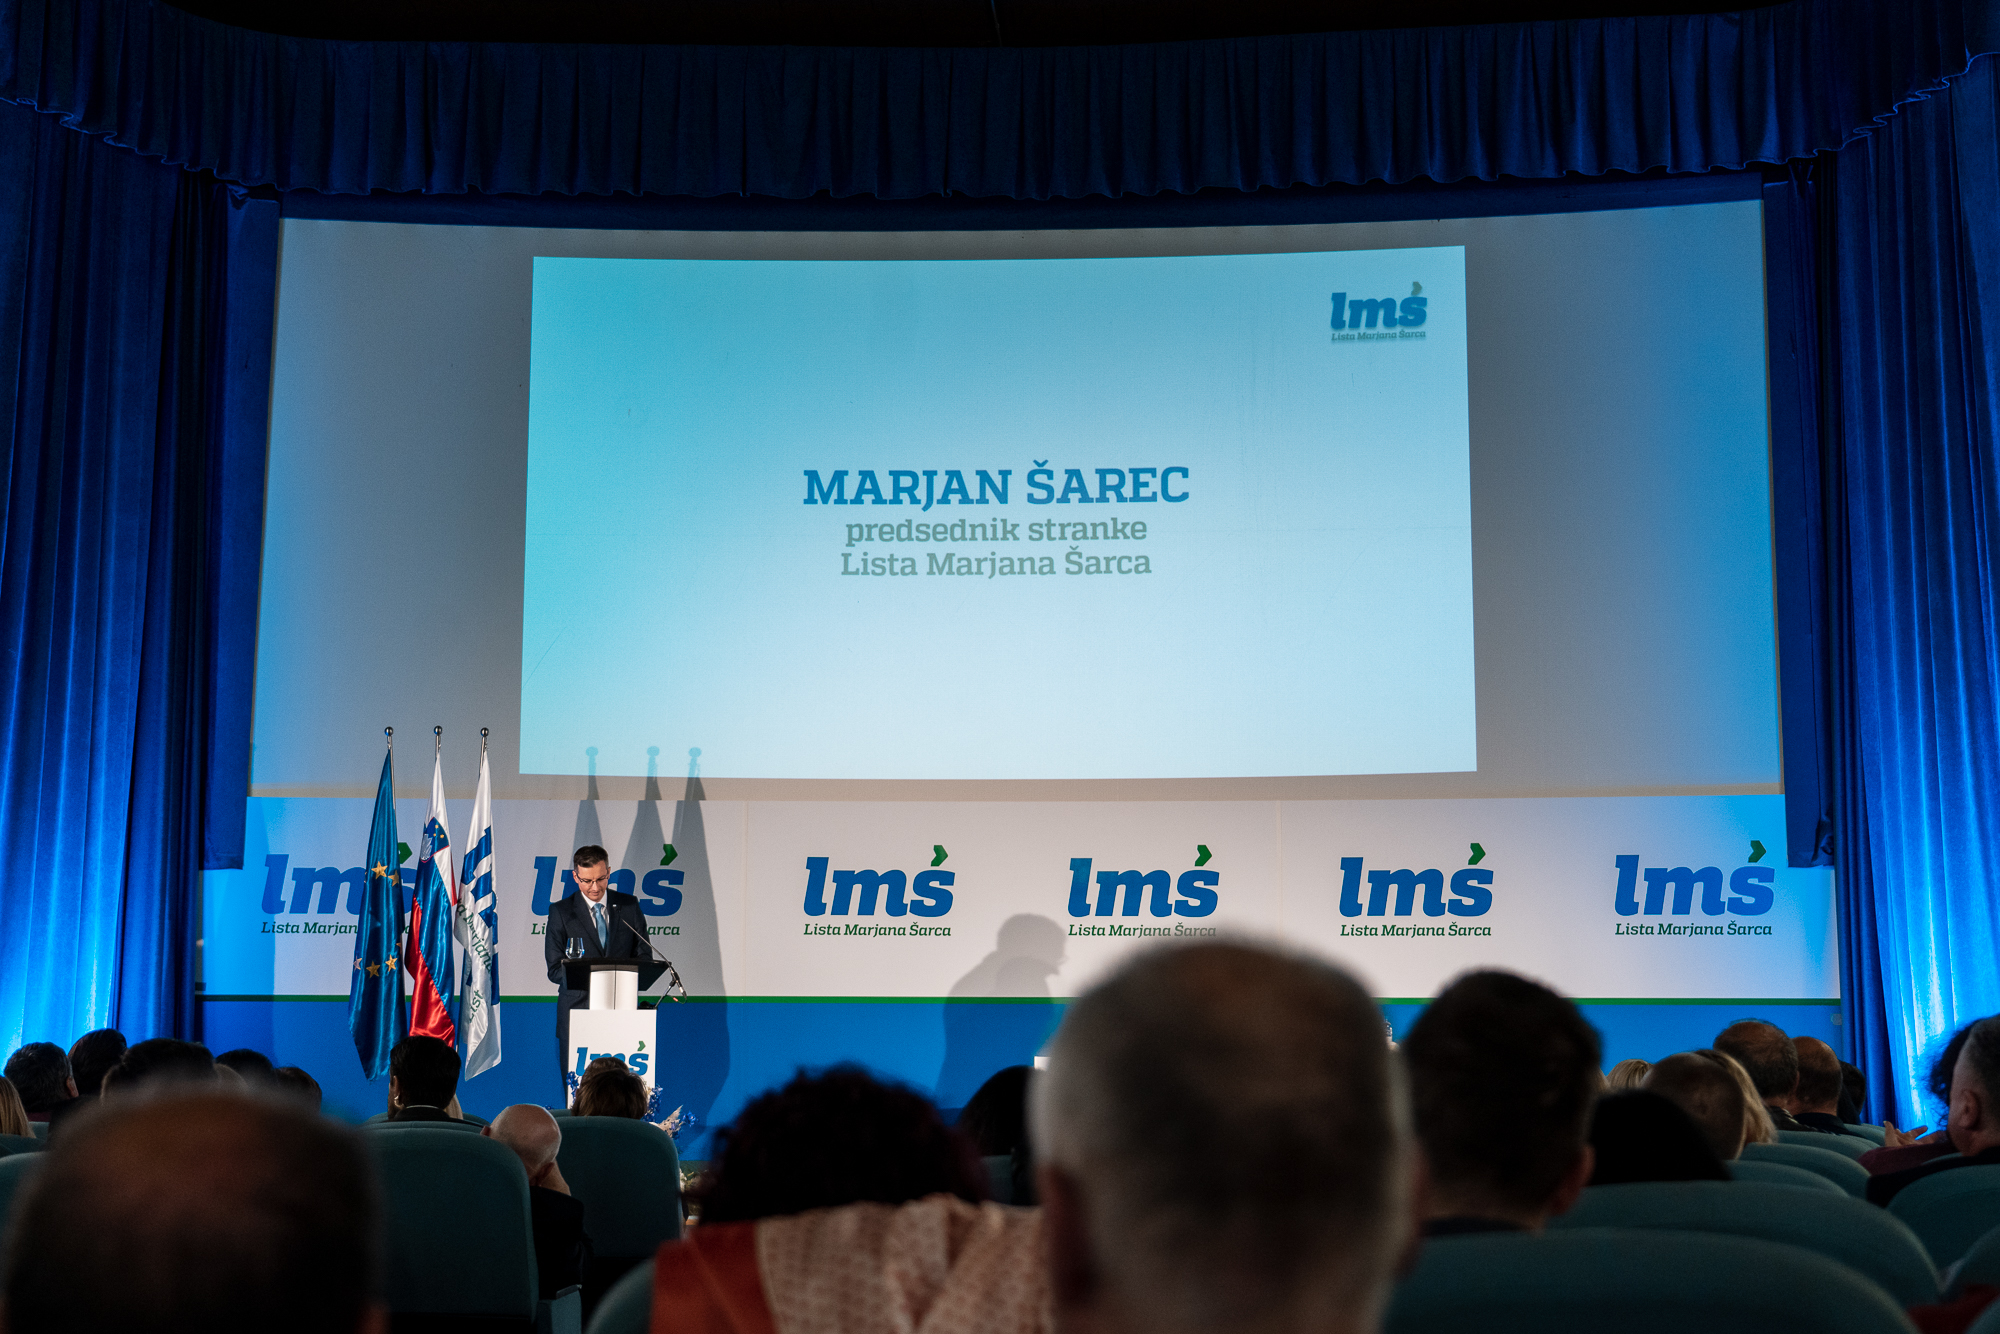 Marjan Šarec, Prime Minister of Slovenia and president of Lista Marjana Šarca, on the stage at the Fifth Congres of Lista Marjana Šarca in Trbovlje, Slovenia